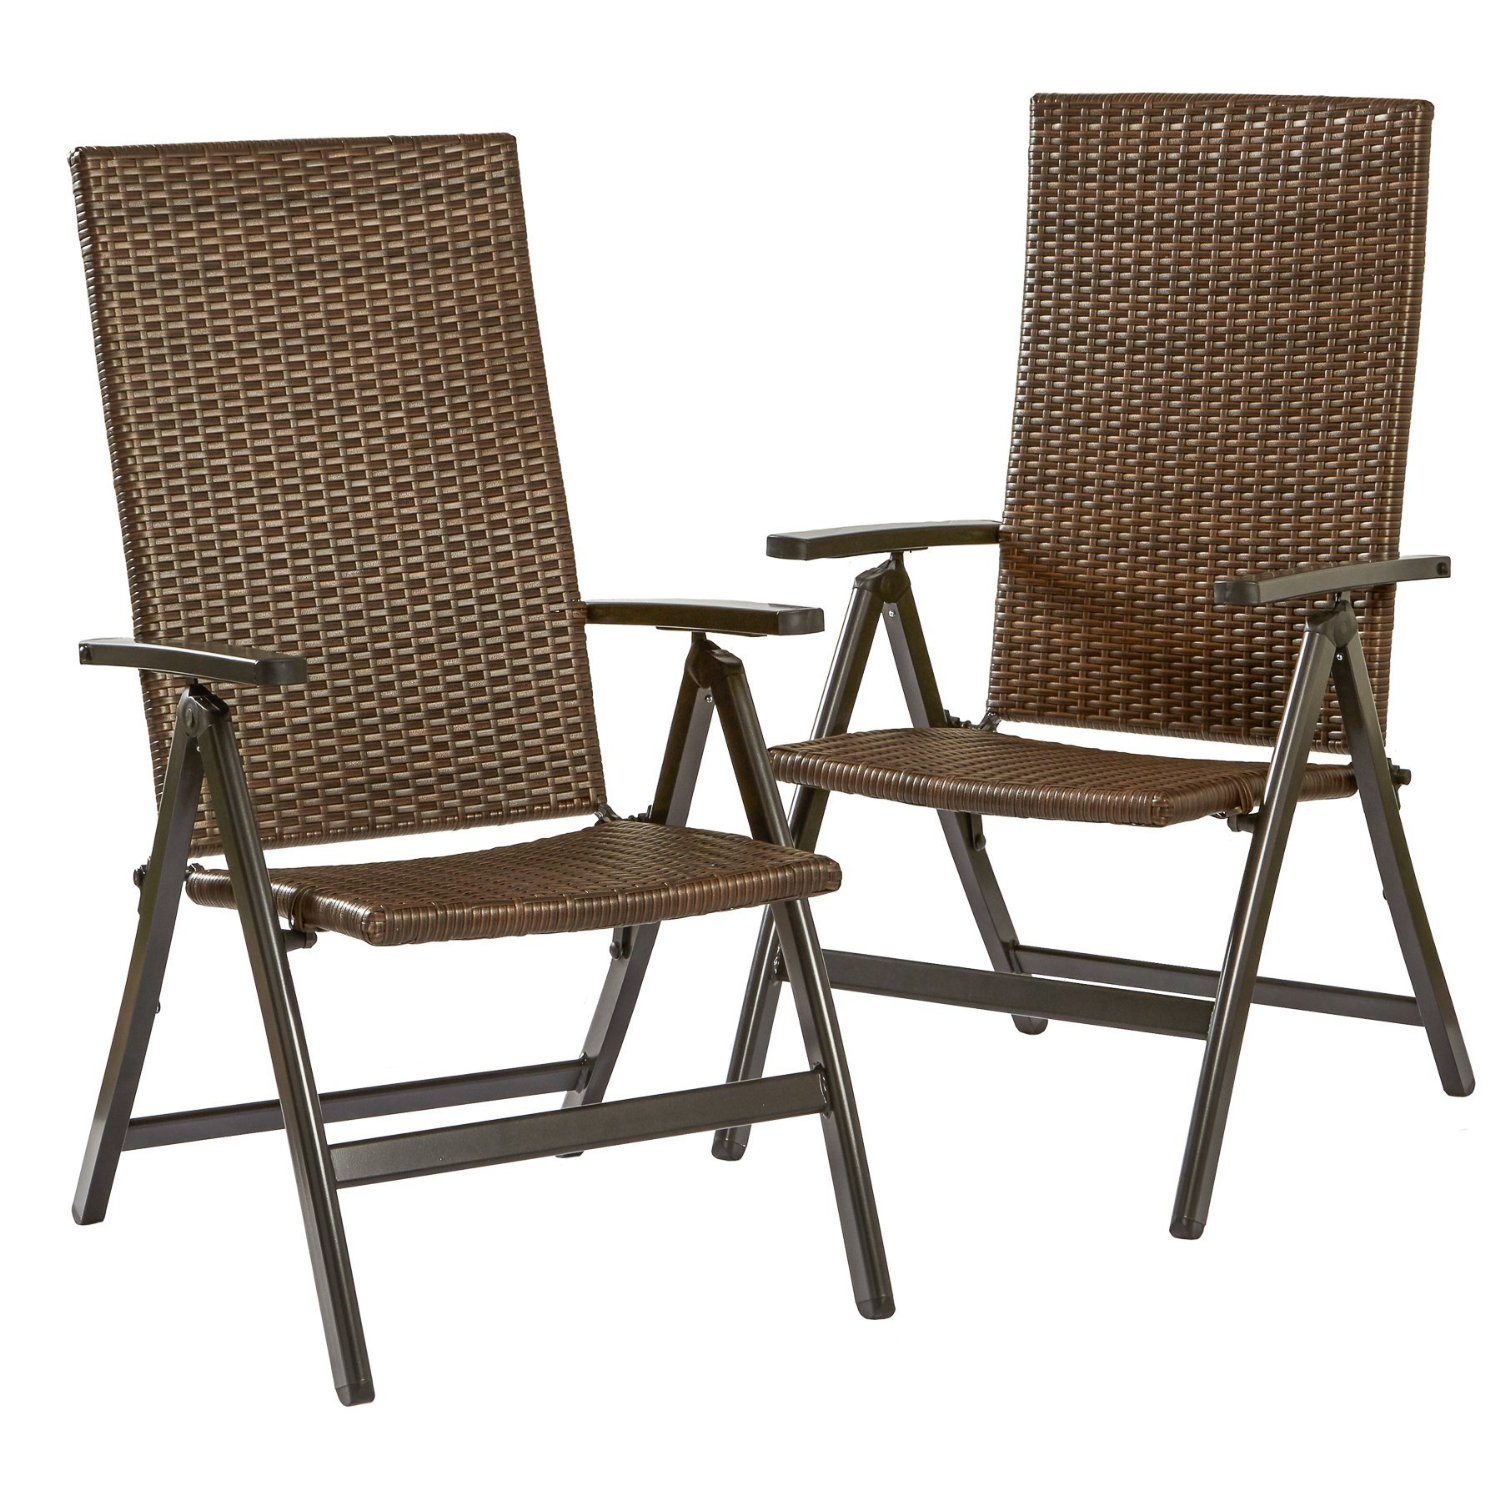 Greendale Home Fashions Hand Woven PE Wicker Outdoor Reclining Chairs